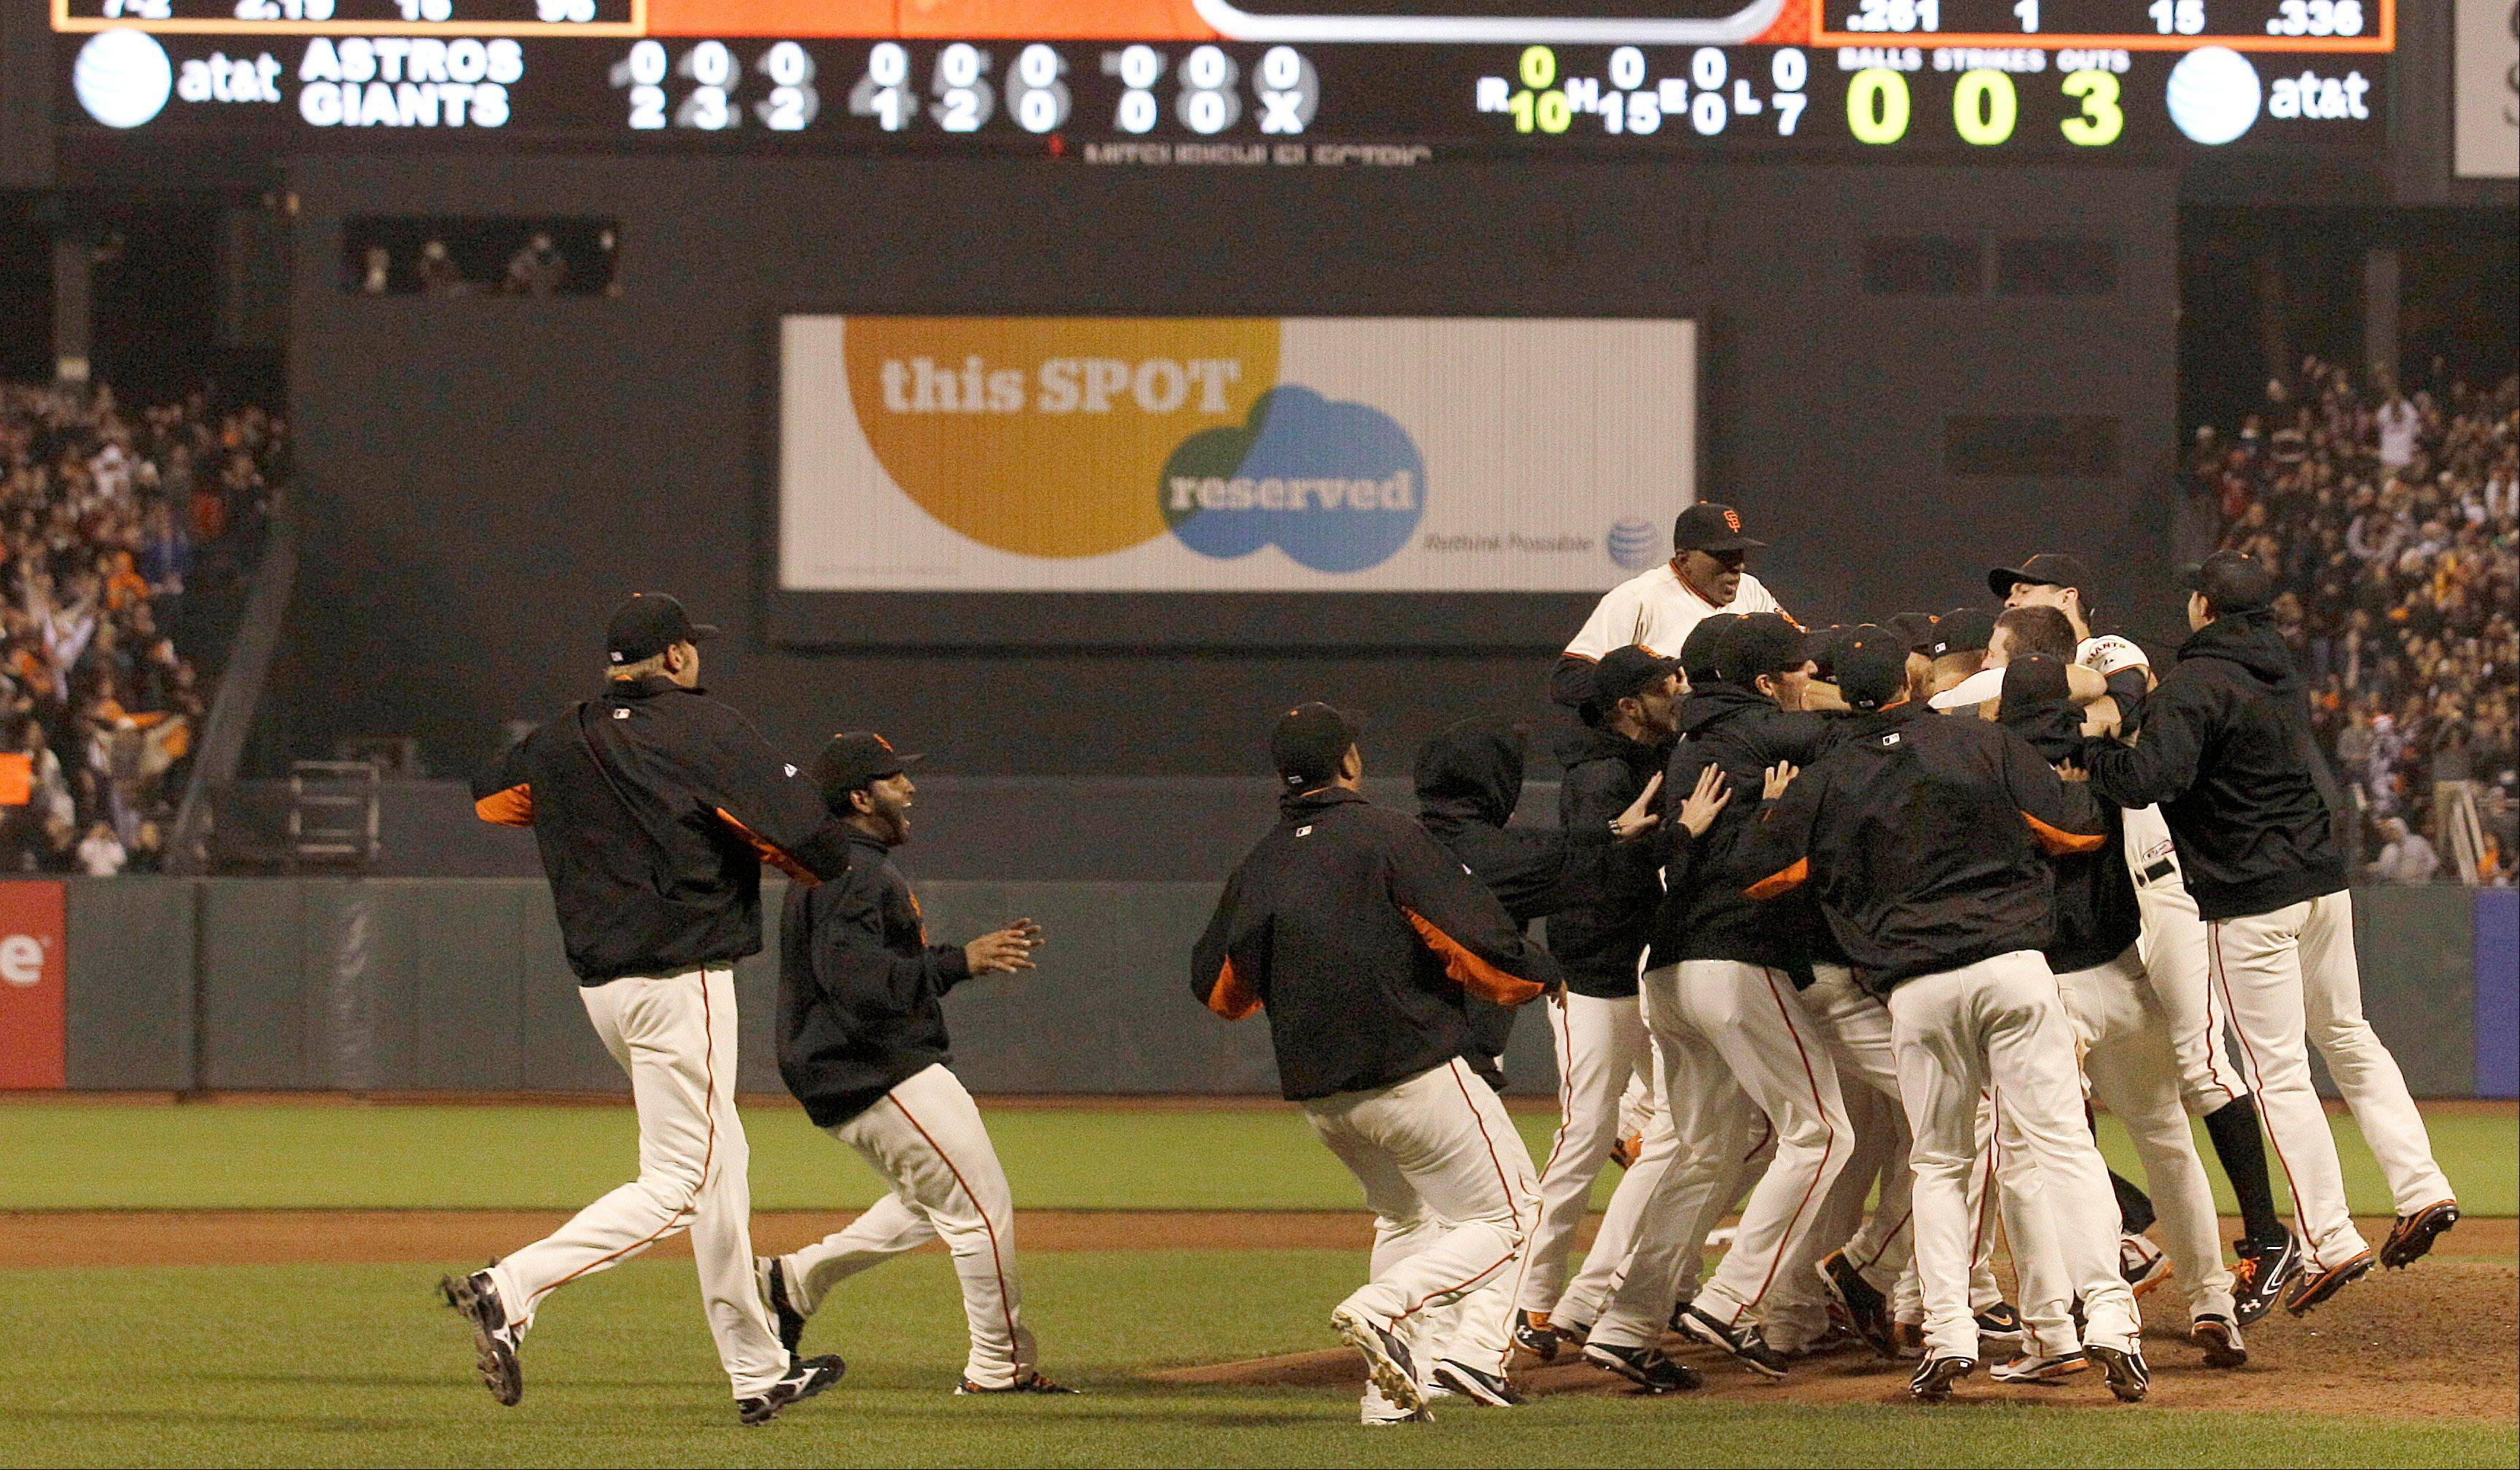 San Francisco Giants players celebrate Wednesday after pitcher Matt Cain pitched a perfect game.